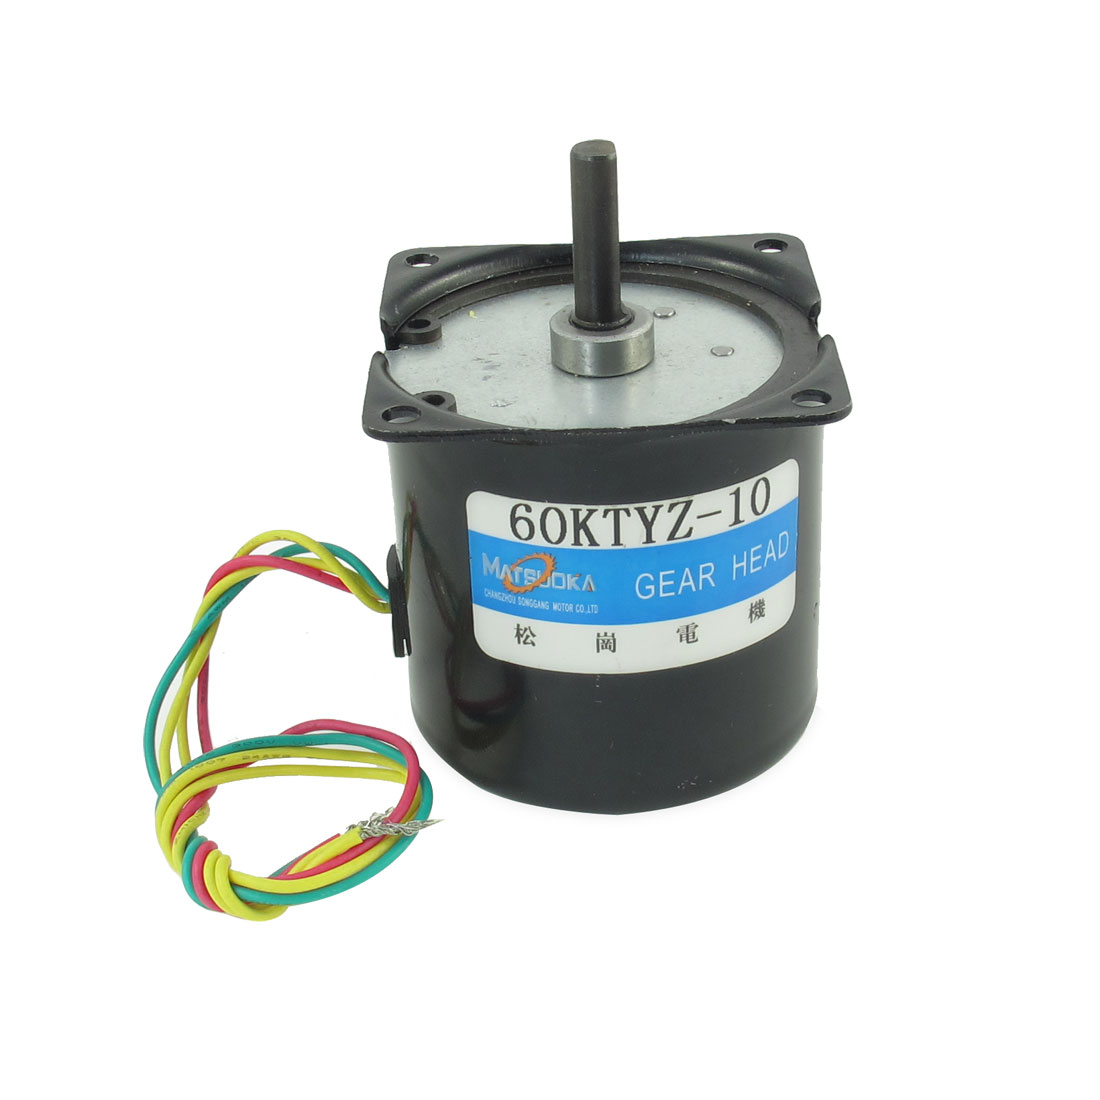 60mm Diameter Synchronous Reduction Geared Motor Black 220VAC 10RPM 14W